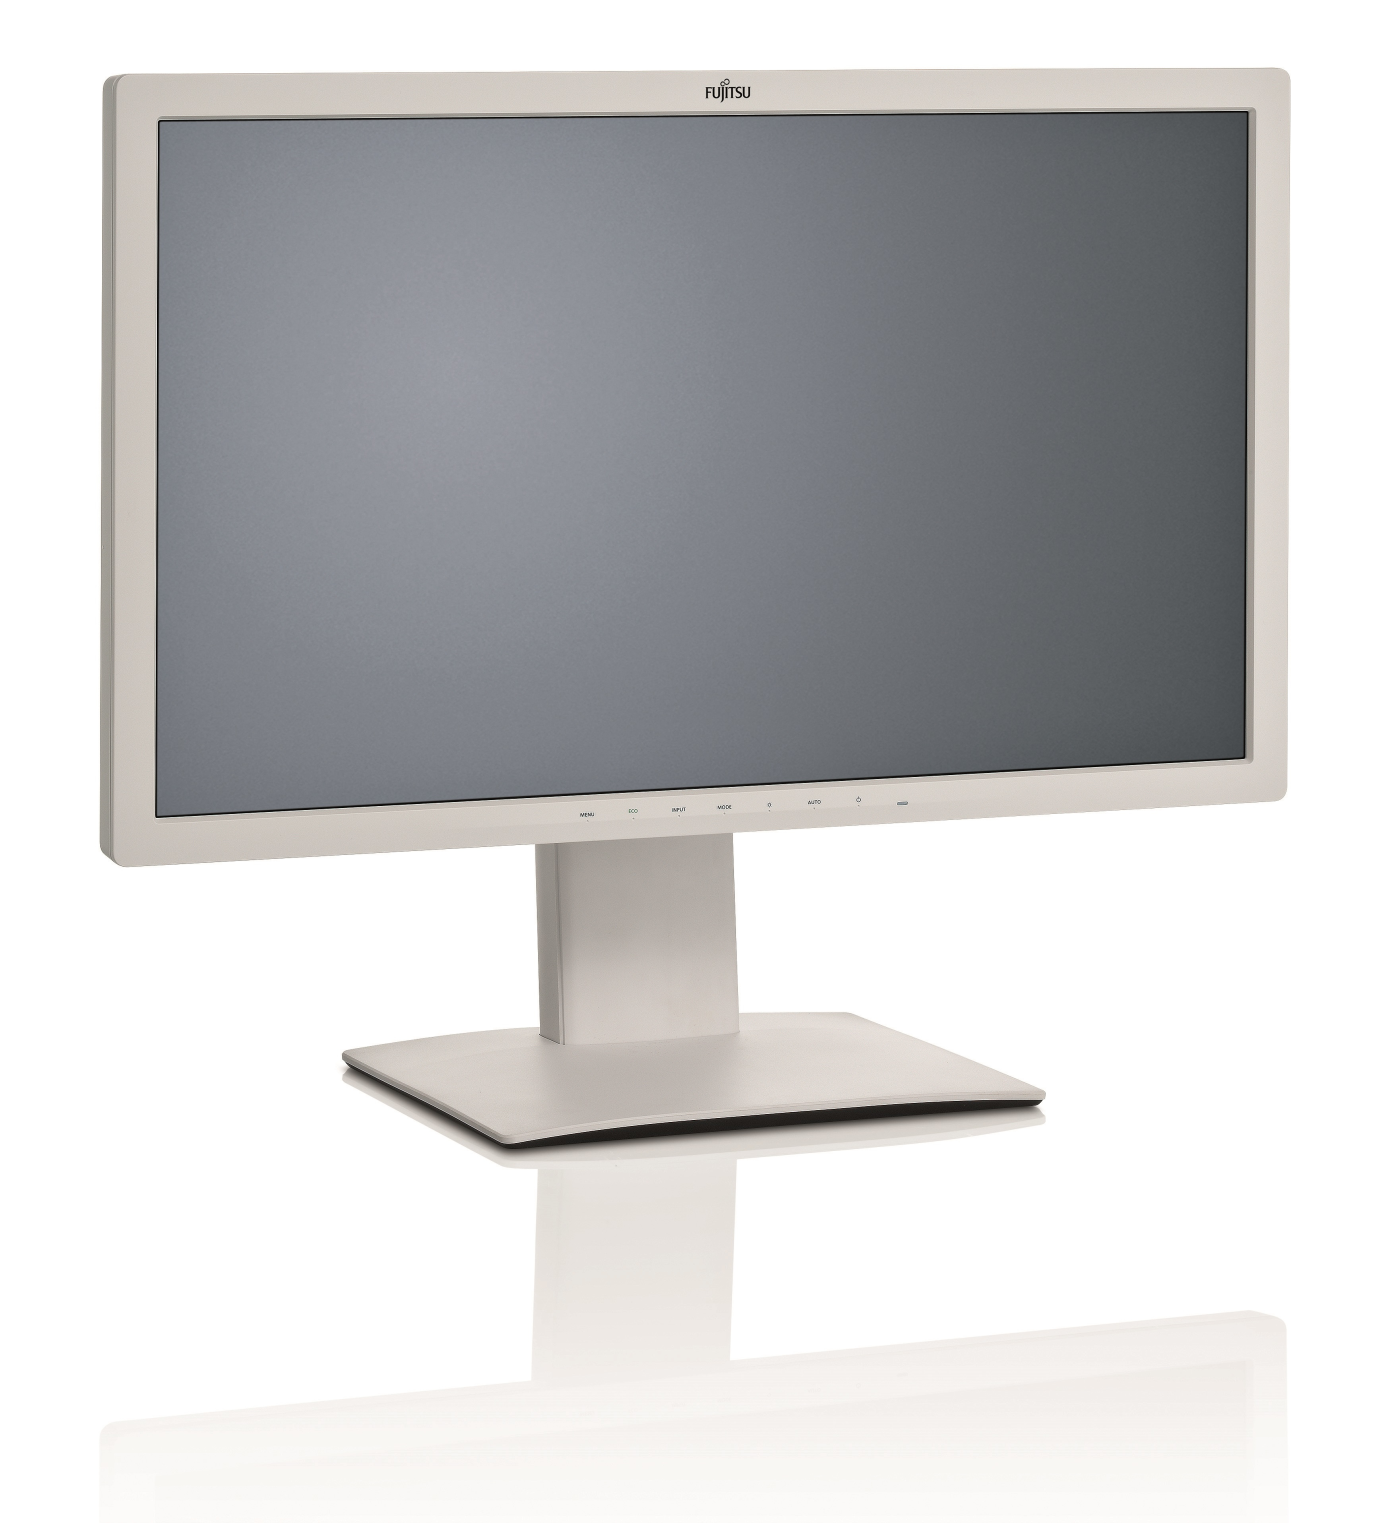 FUJITSU LCD B27T-7 Pro 27'' IPS GREY(1920x1080/1000:1/250cd/5ms/DVI/DP/VGA/USB)